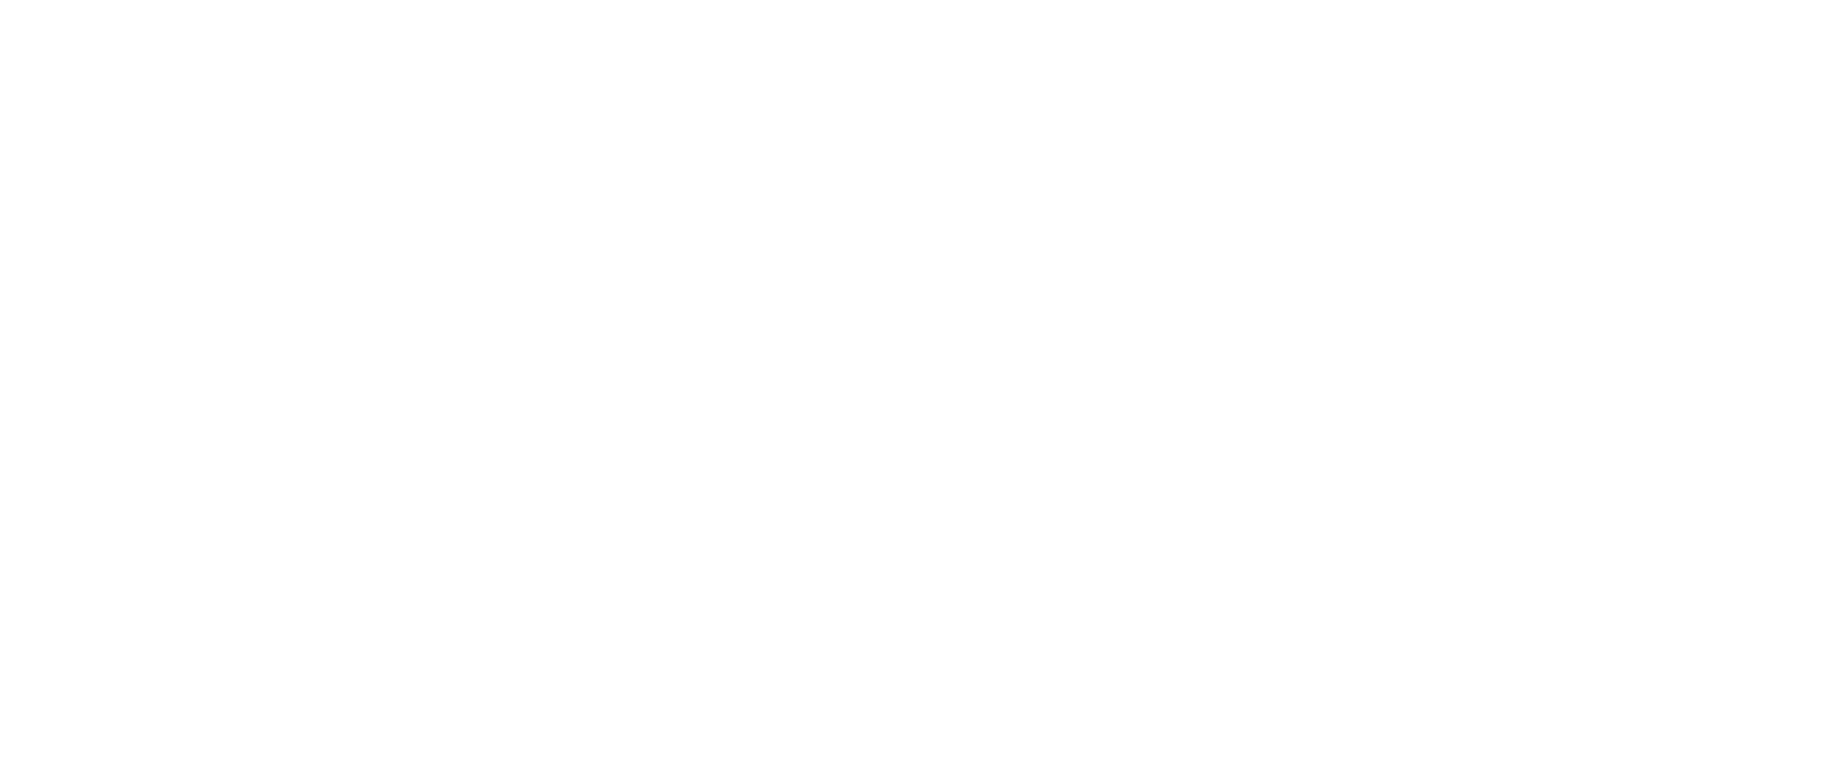 Stratton by the Sound Logo